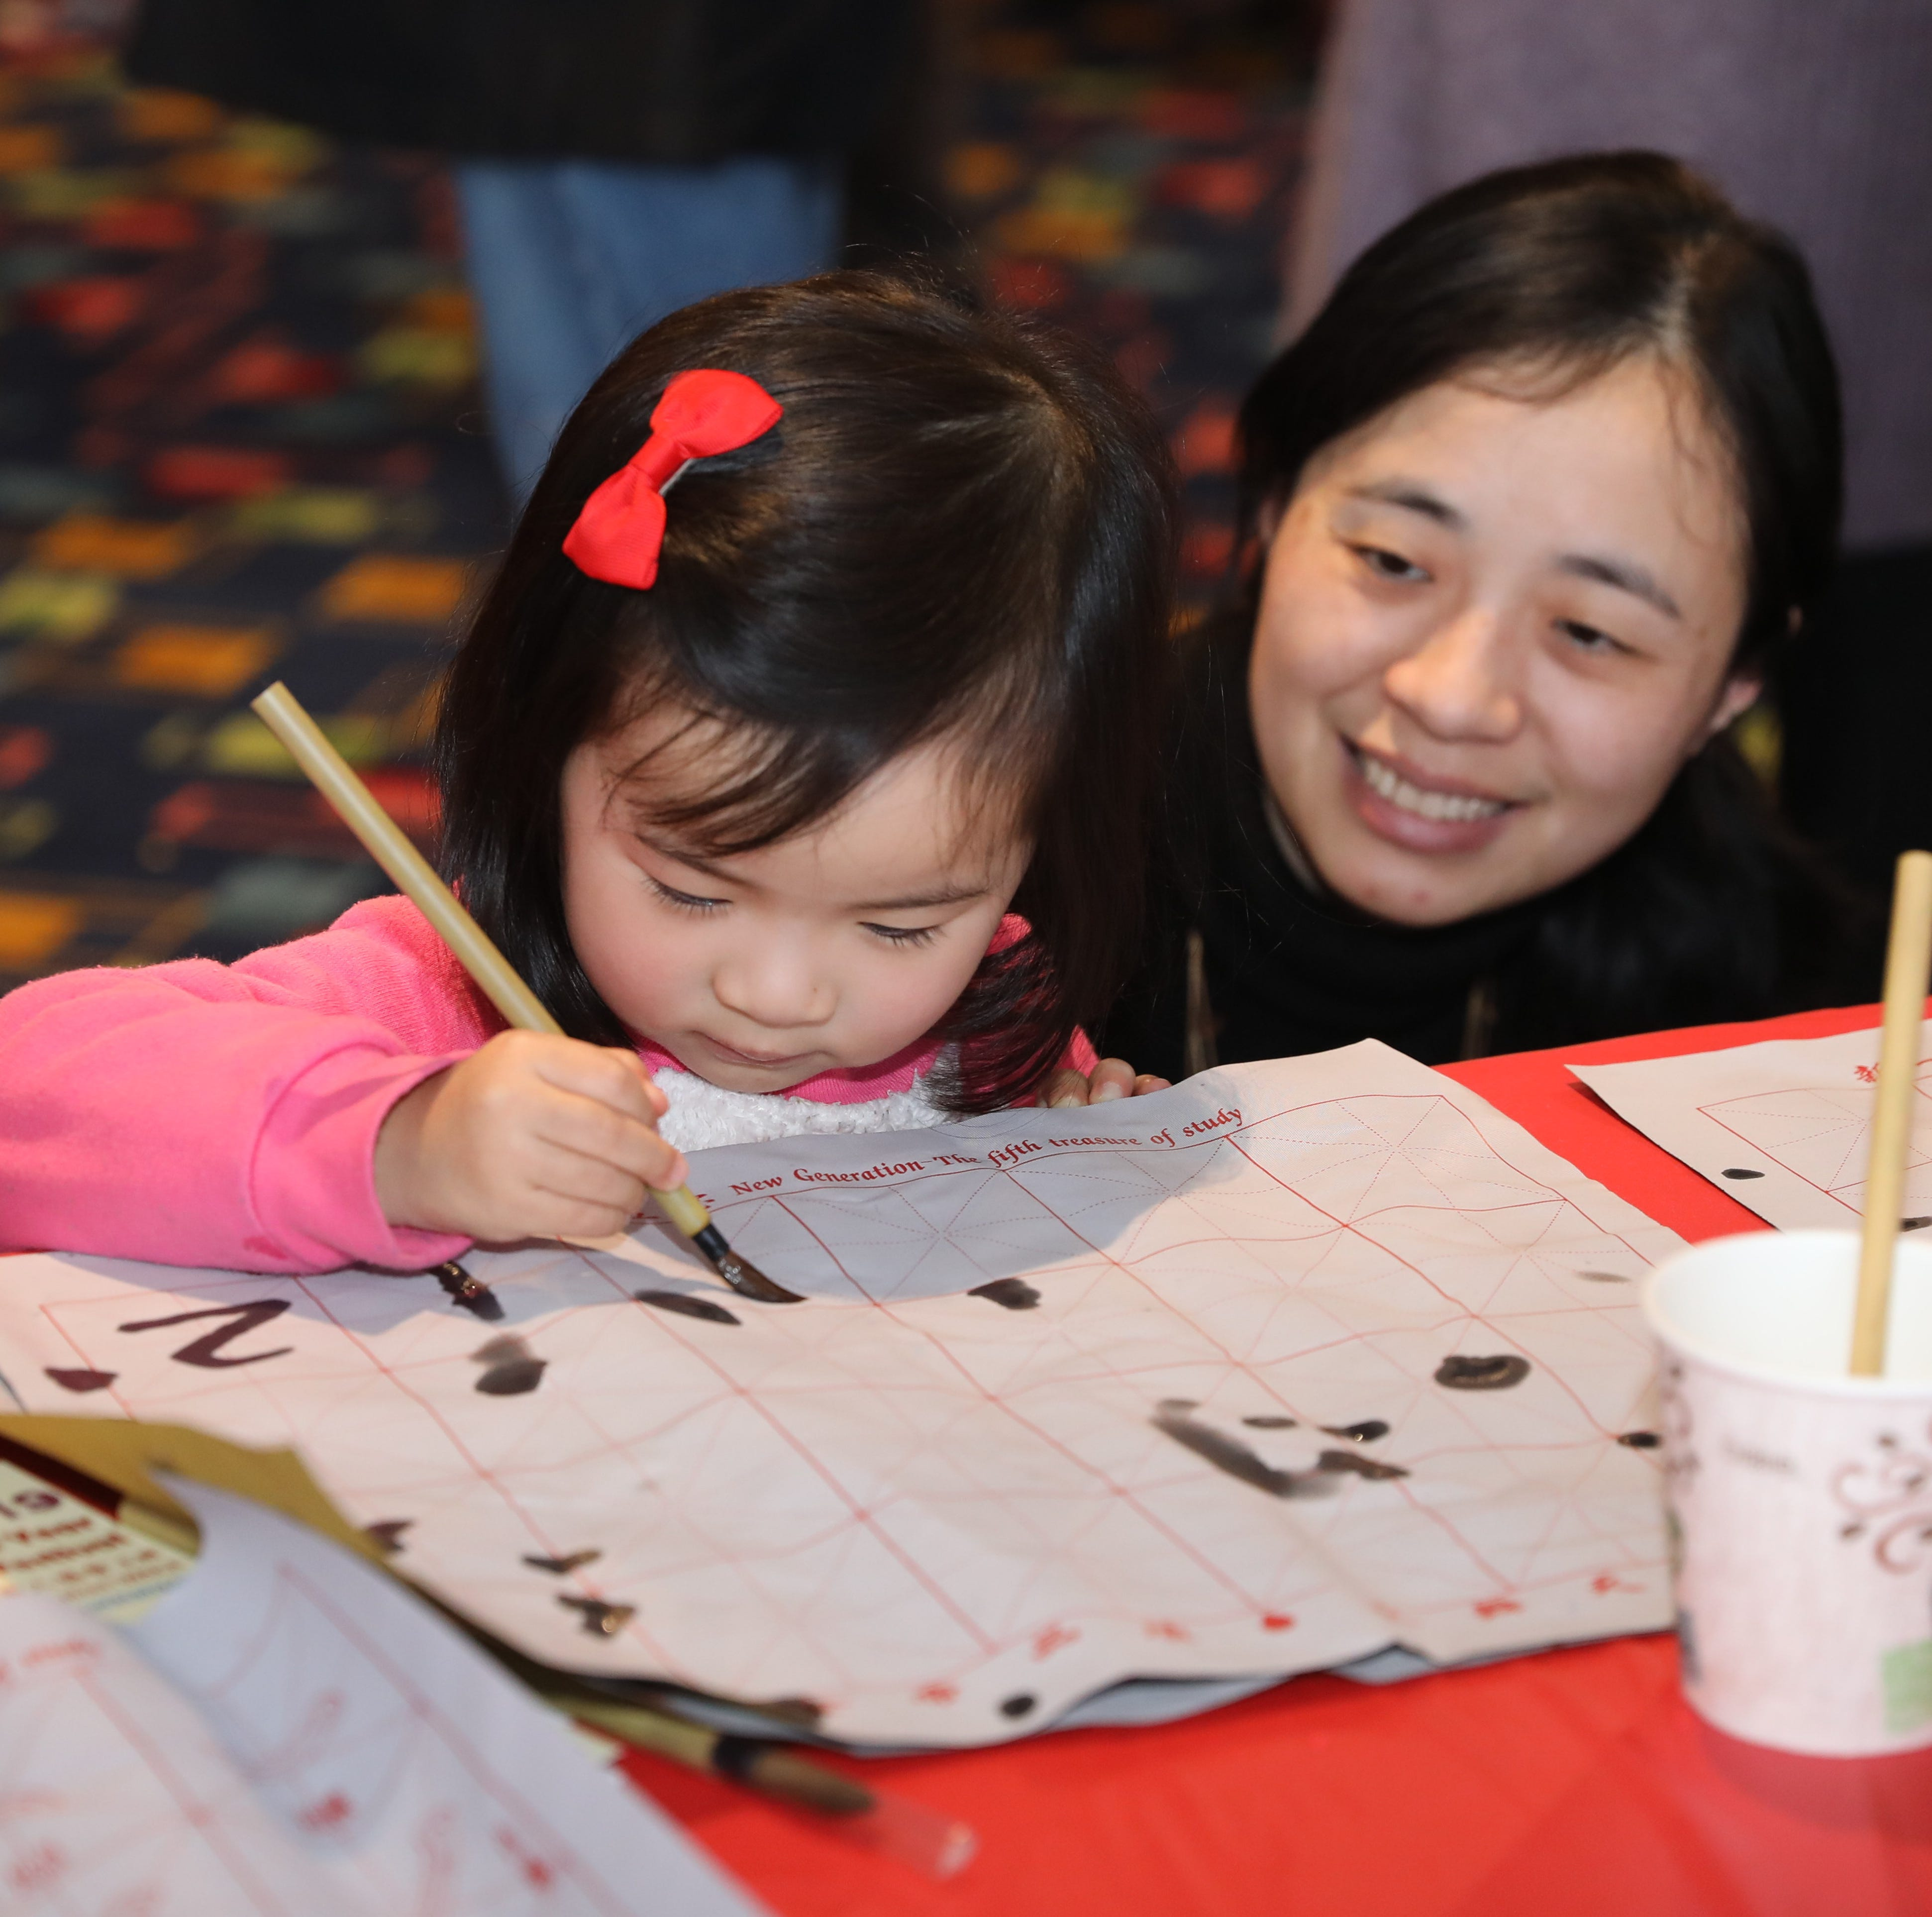 Chinese New Year celebrated at SUNY Purchase College